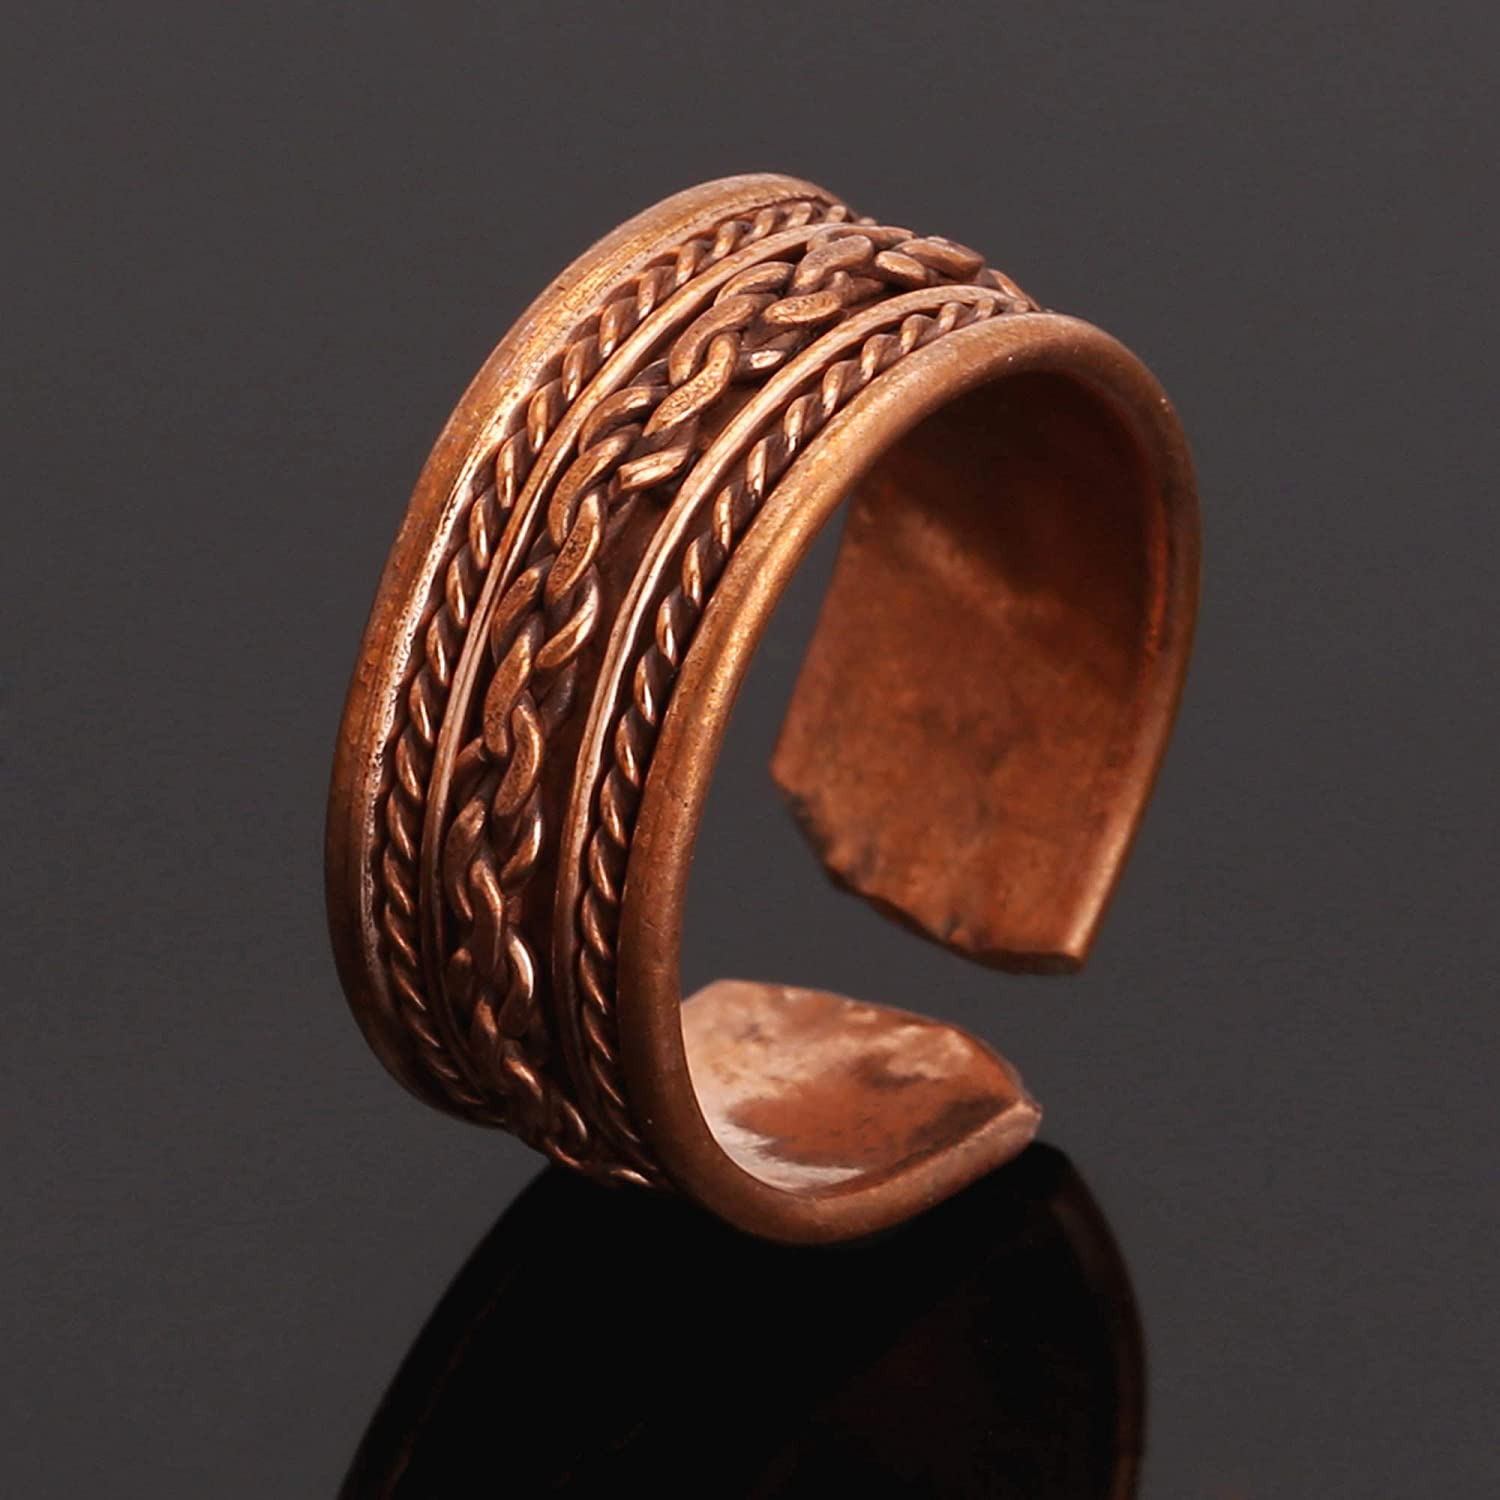 iCraftJewel Pure Copper Ethnic Style Ring for Unisex Bio Healing Pain Reliever Ring Gift Item